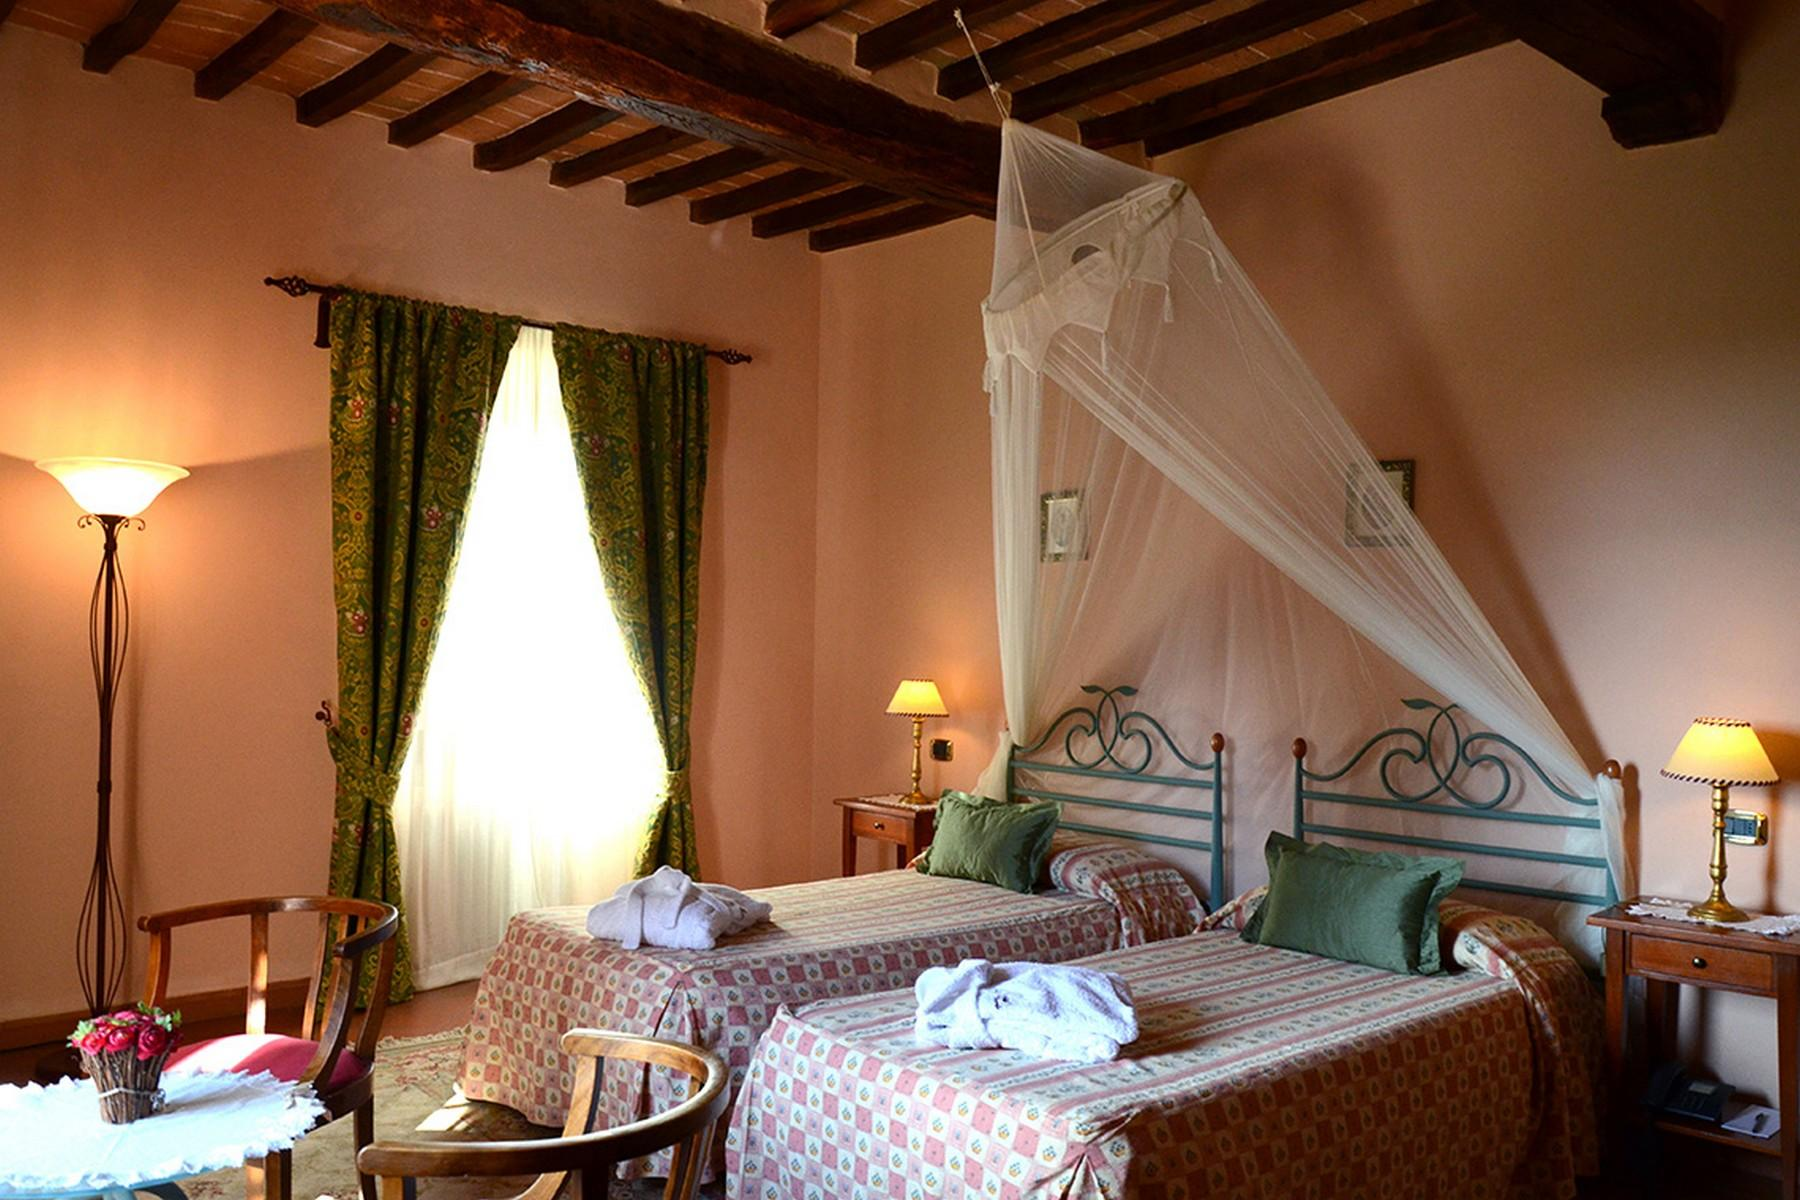 Charming holiday resort in the heart of Tuscany - 9